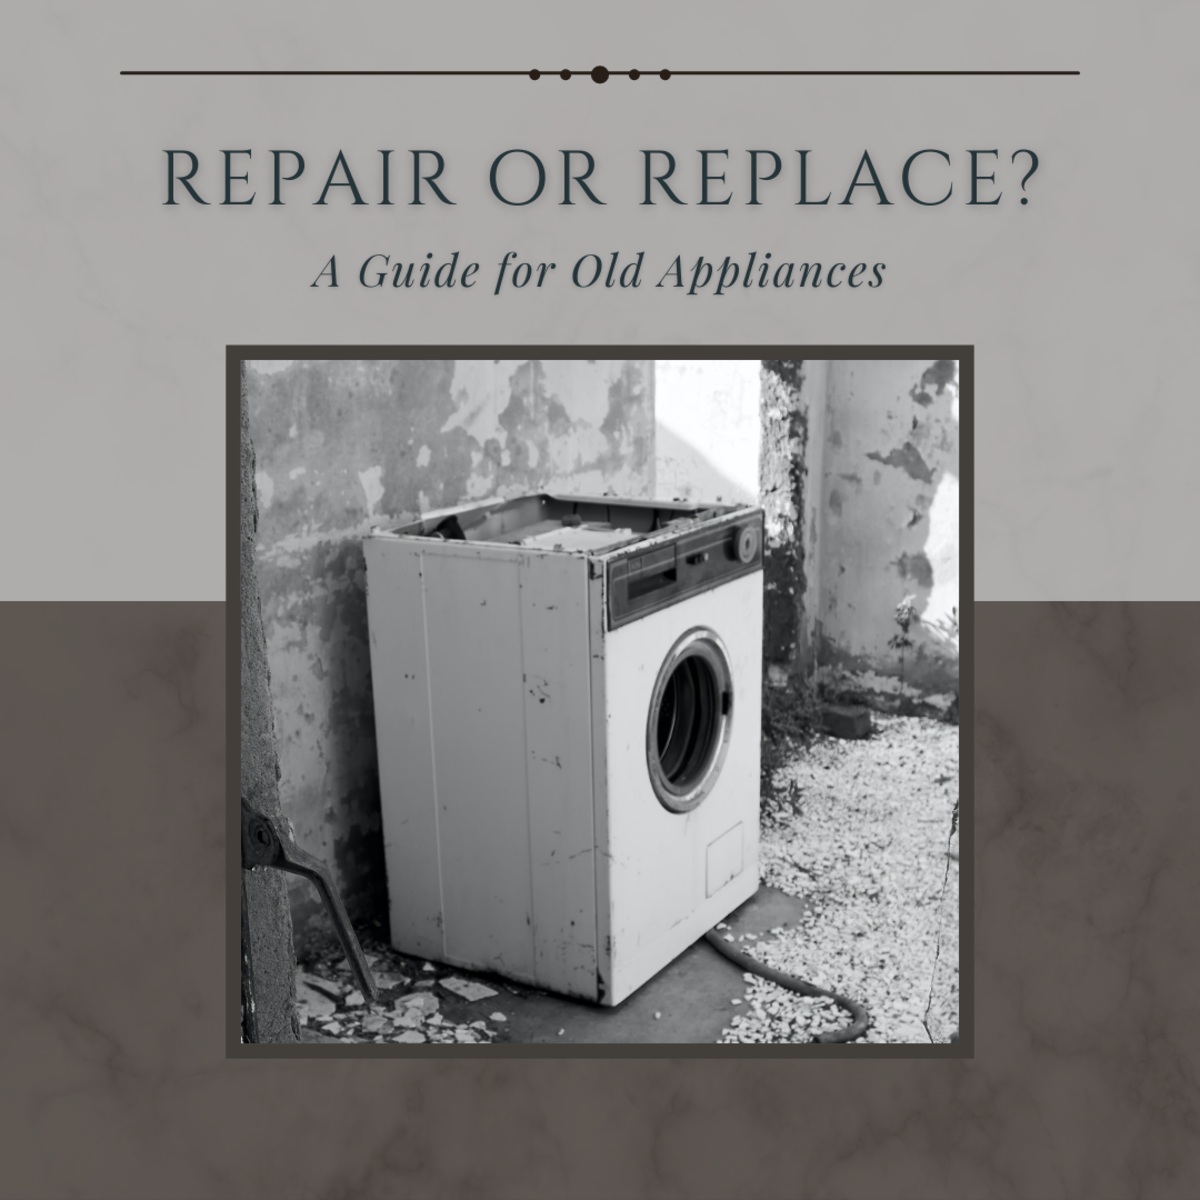 This guide will help you determine whether to repair or replace your old appliance.